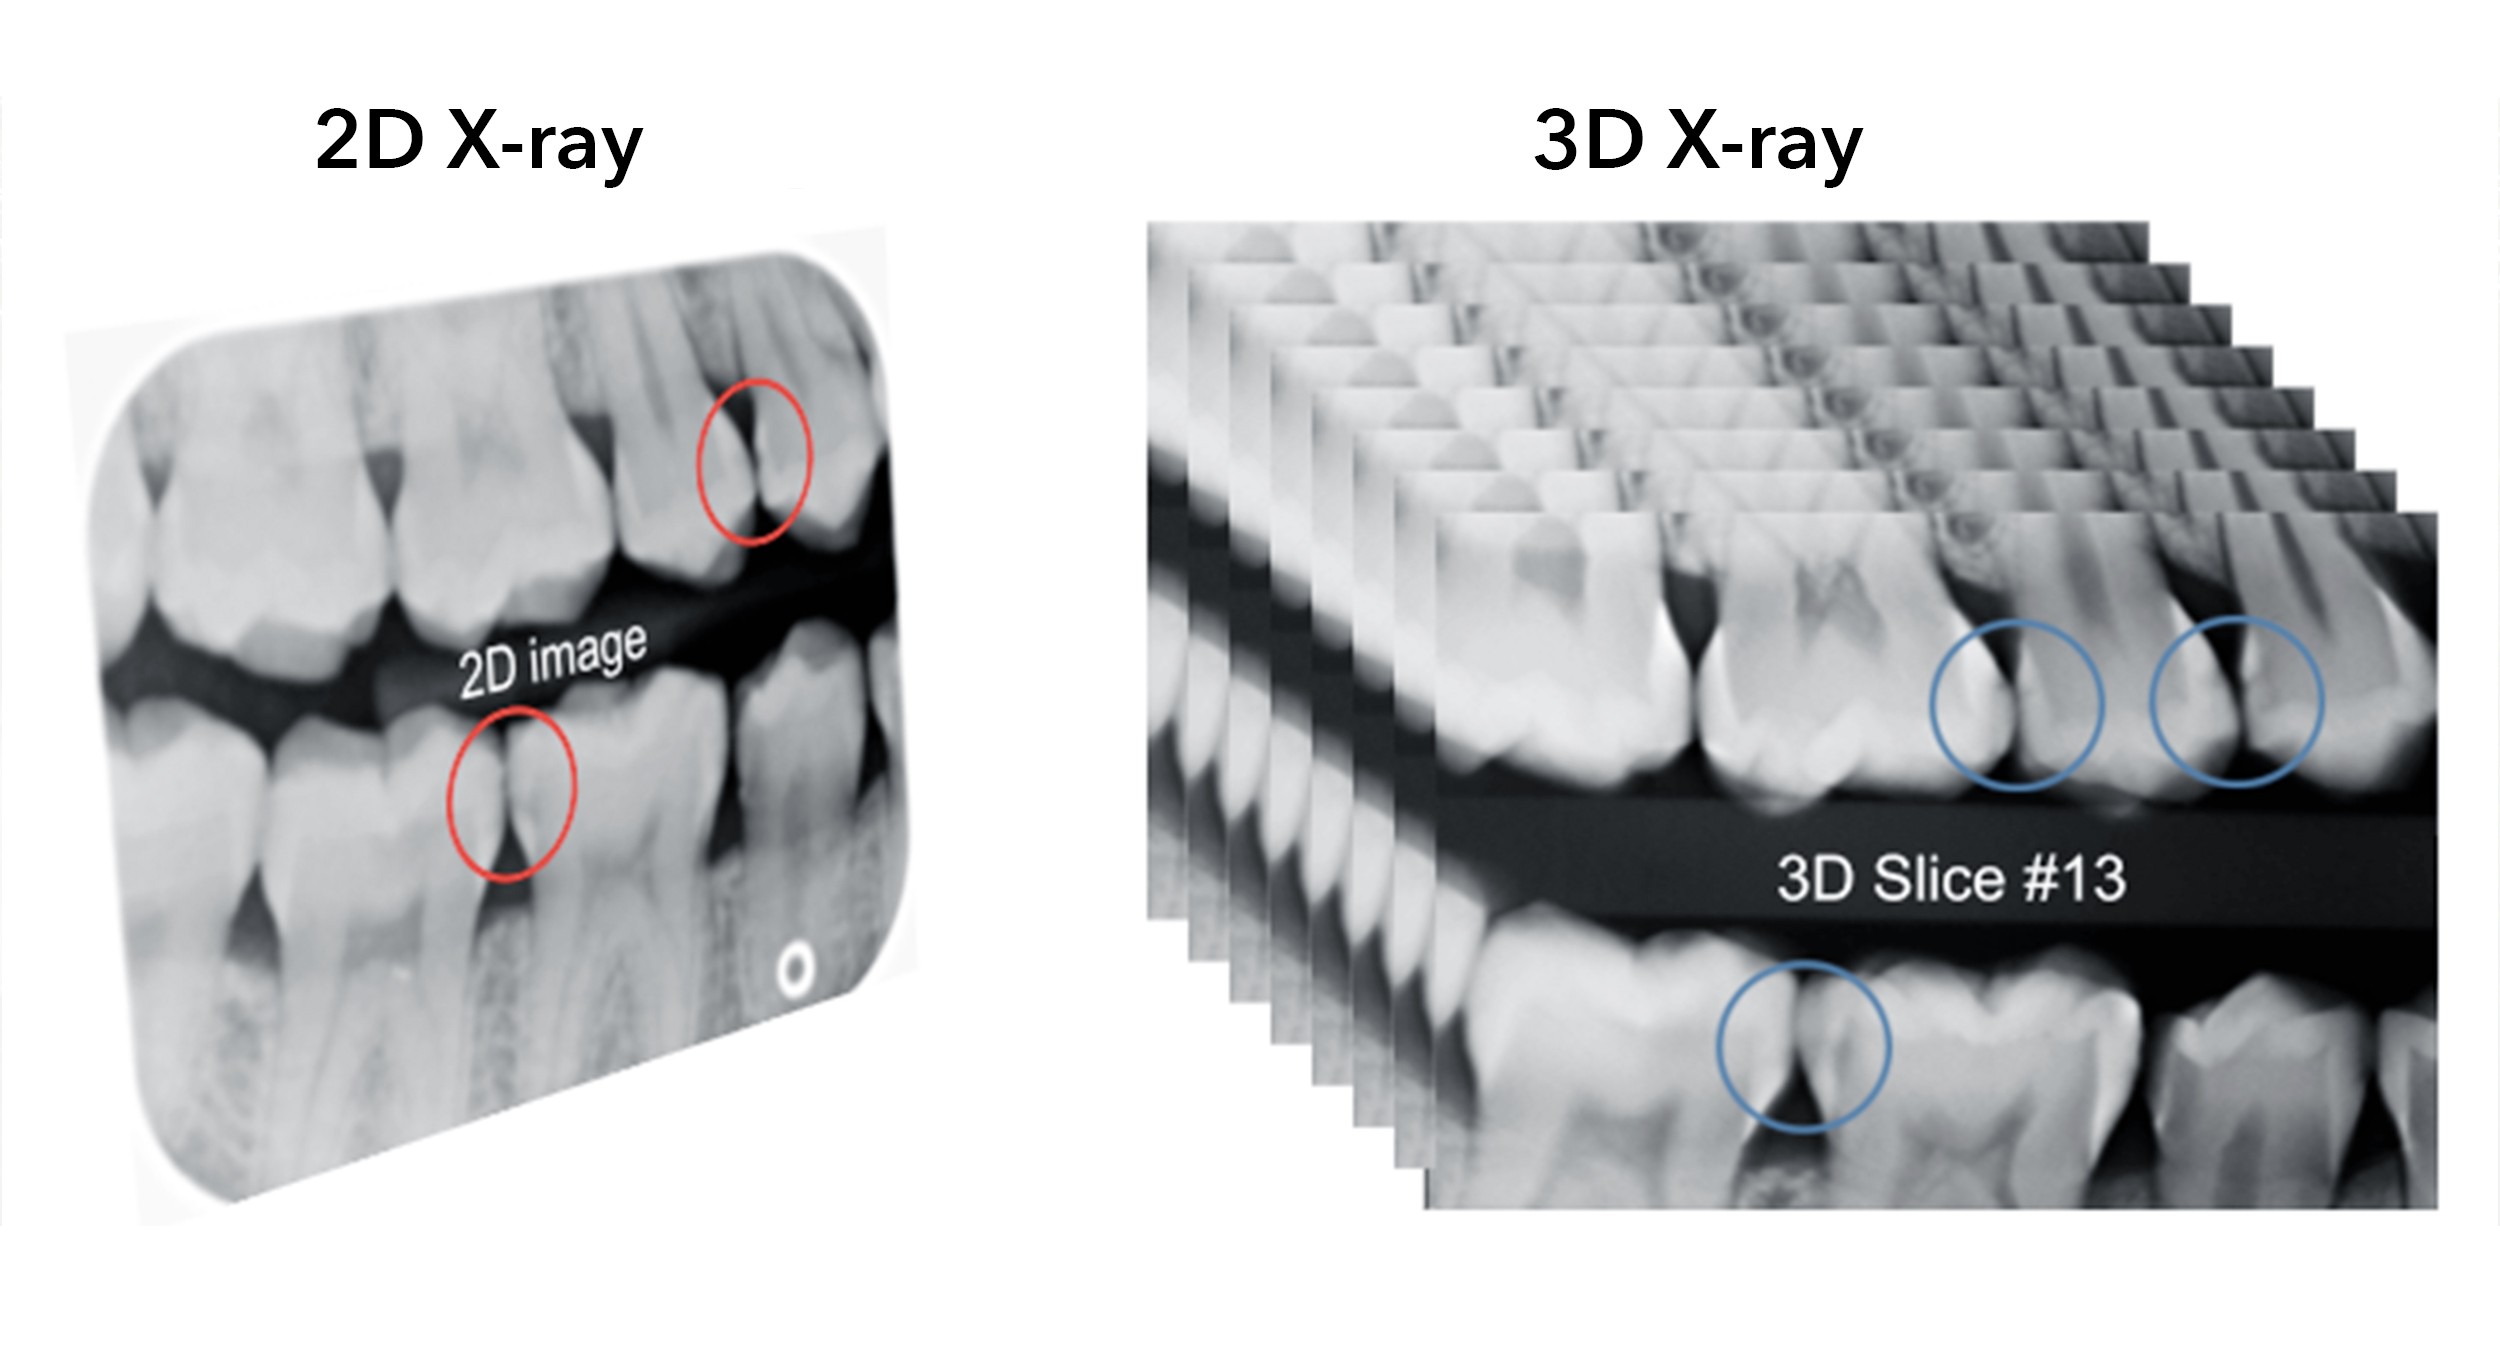 2D vs 3D X-ray images of teeth